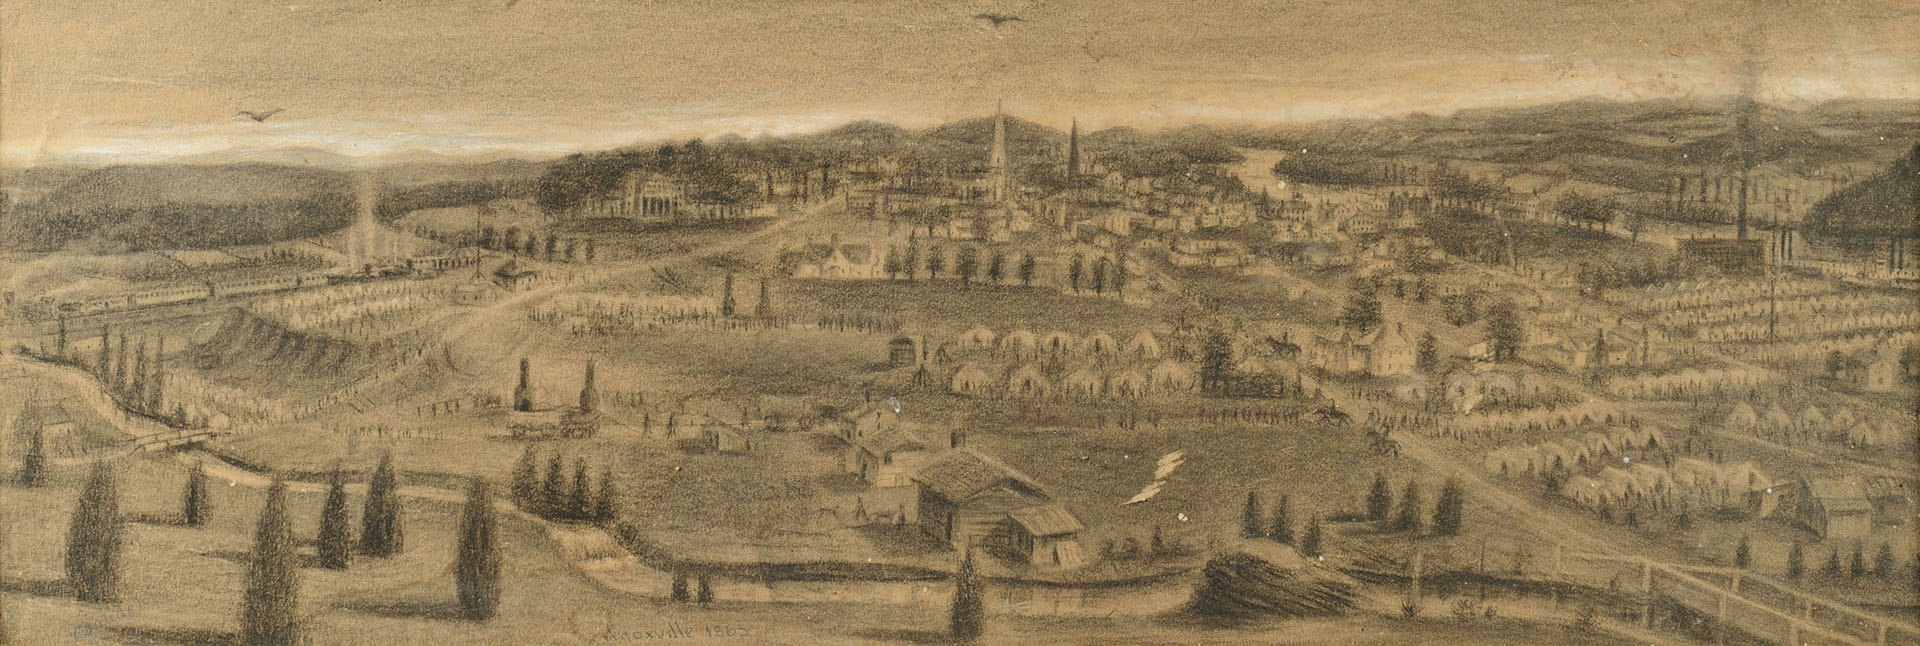 Lot 125: 1863 Civil War Charcoal, Knoxville TN View